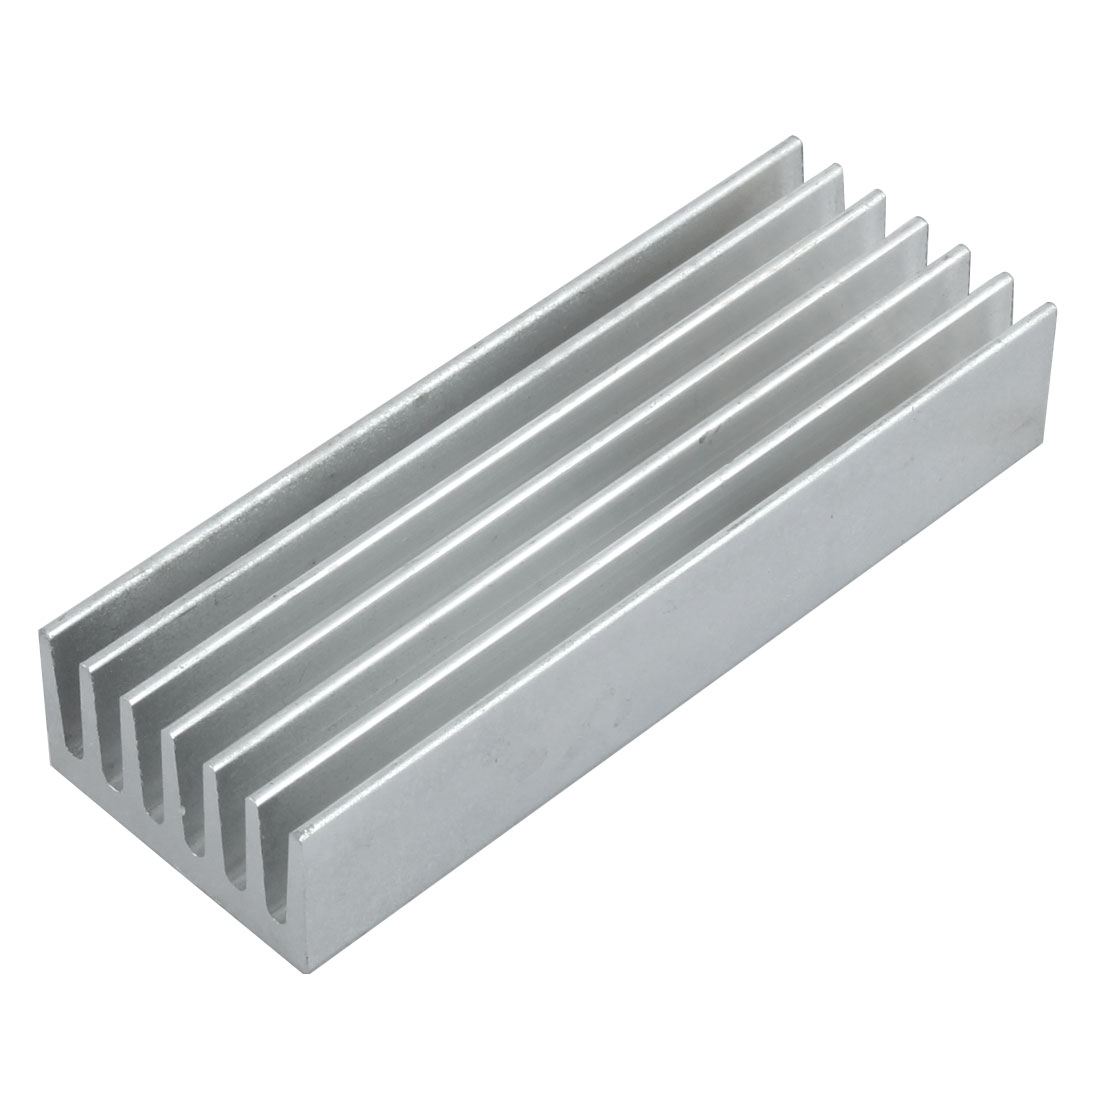 Heat Dissipation 78 x 28 x 15mm Heatsink Cooling Fin